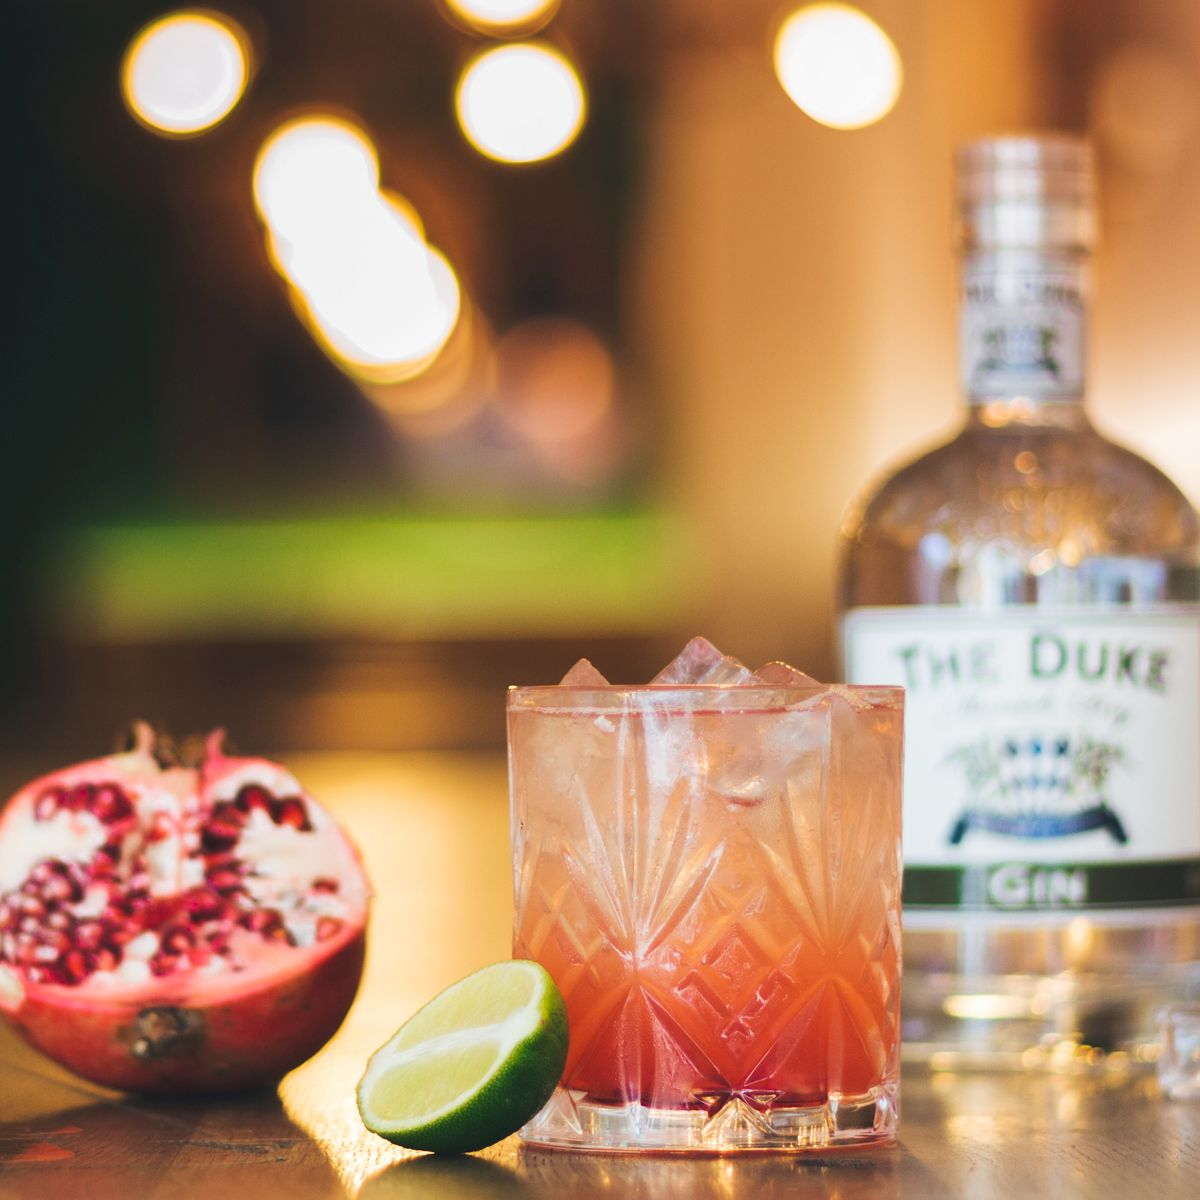 """Sole Rosso"" - Platz 3 der THE DUKE Cocktail Competition"